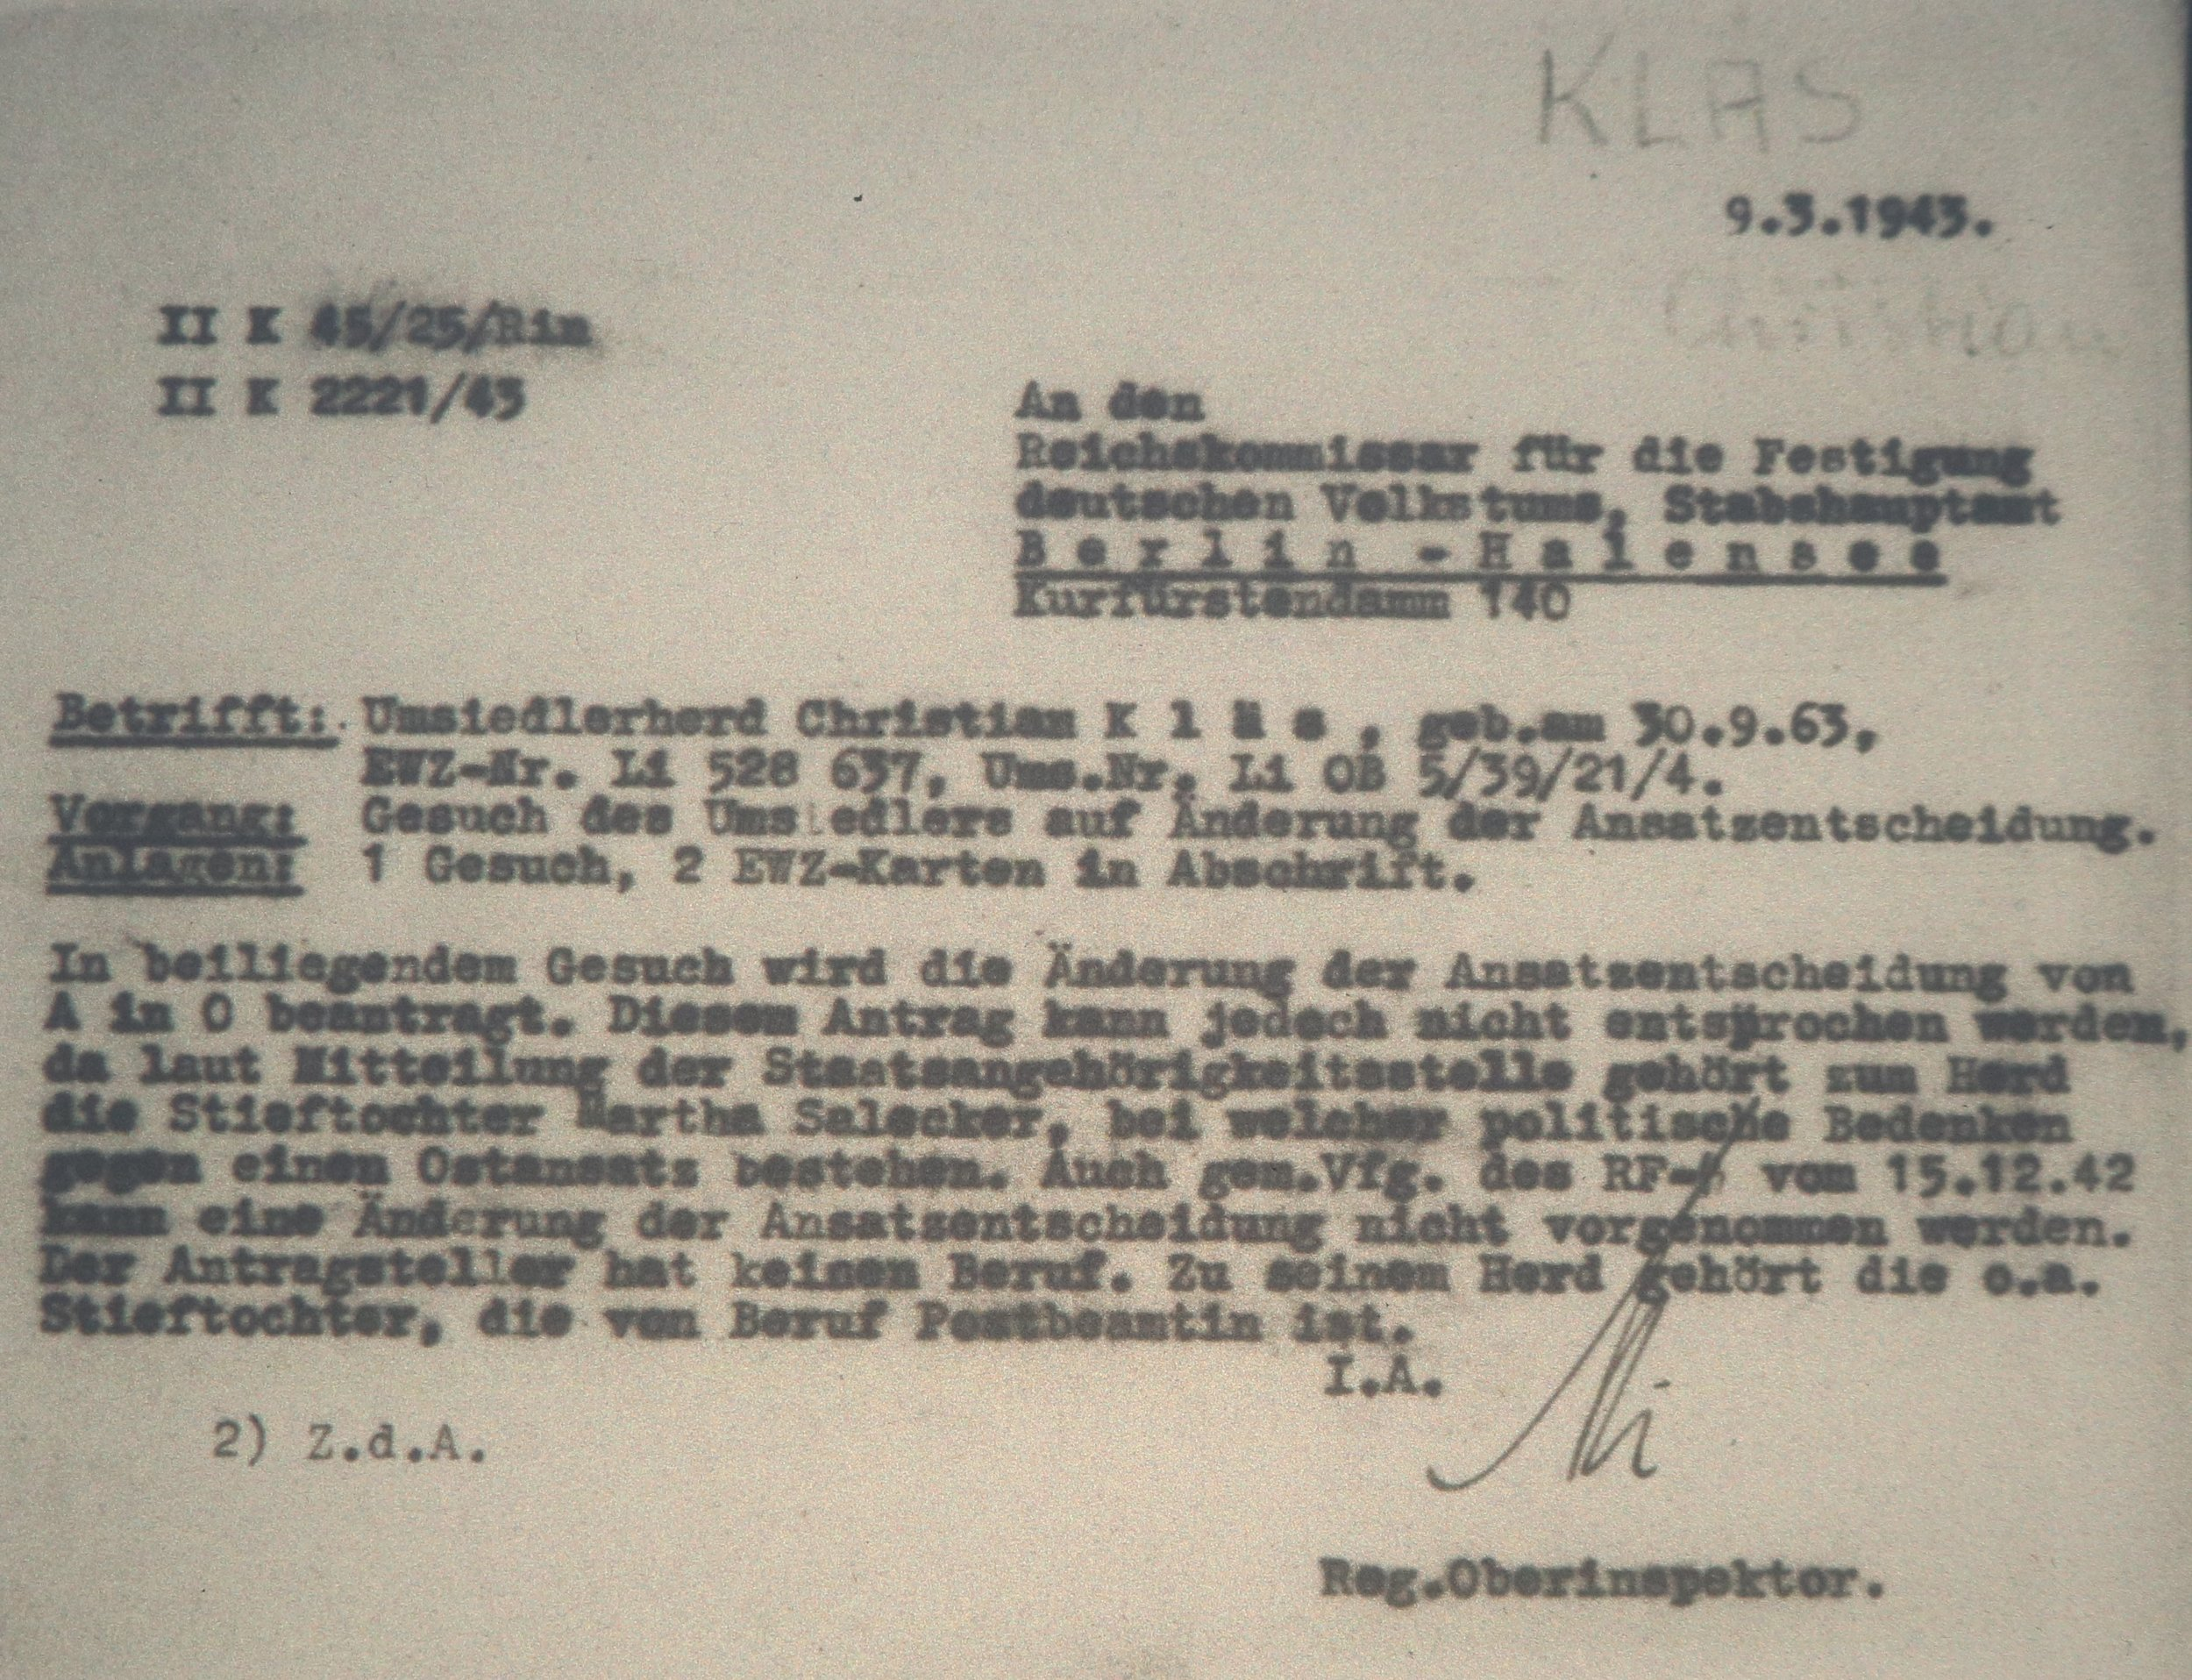 Letter from the EWZ inspector general to the RKFVD from 9th March, 1943.